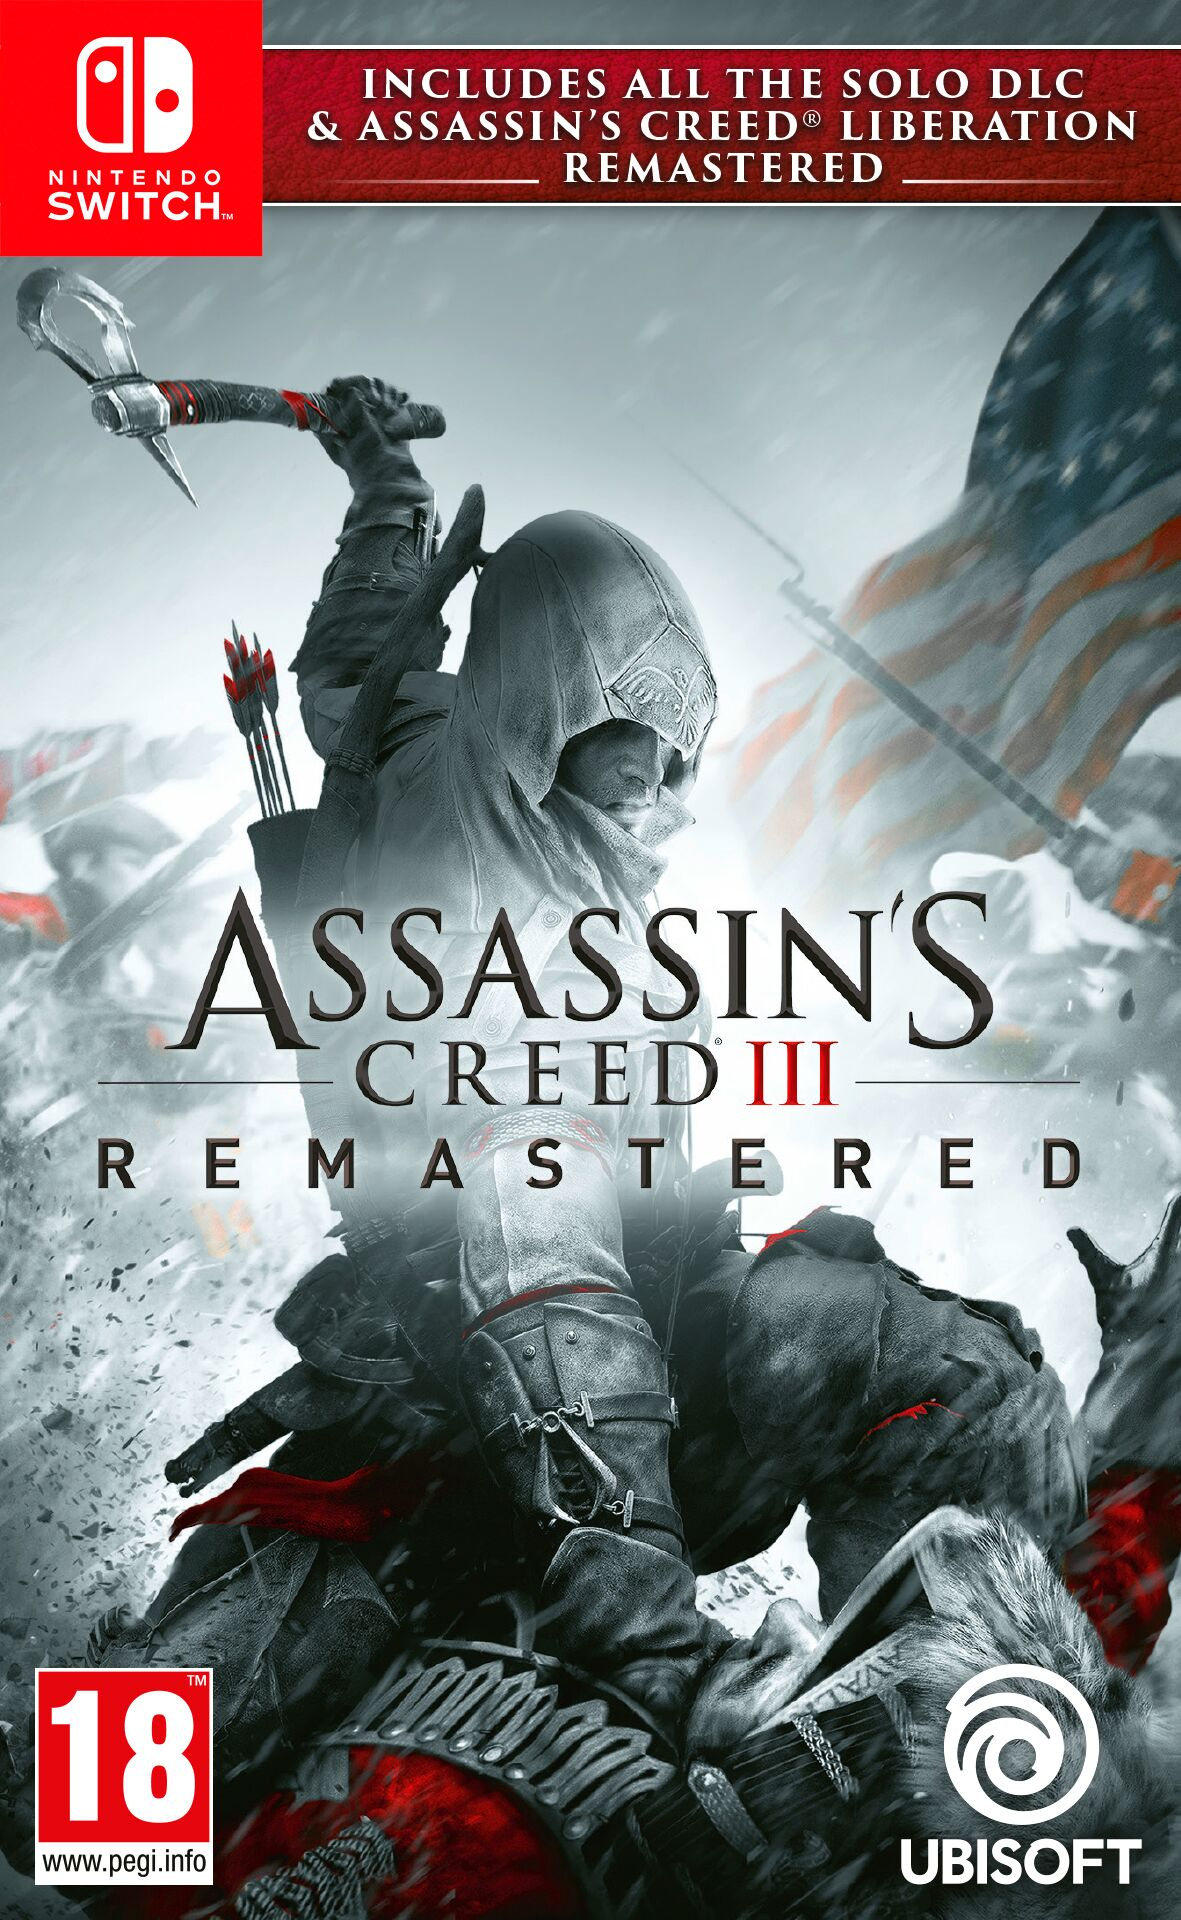 Assassins Creed III Remastered